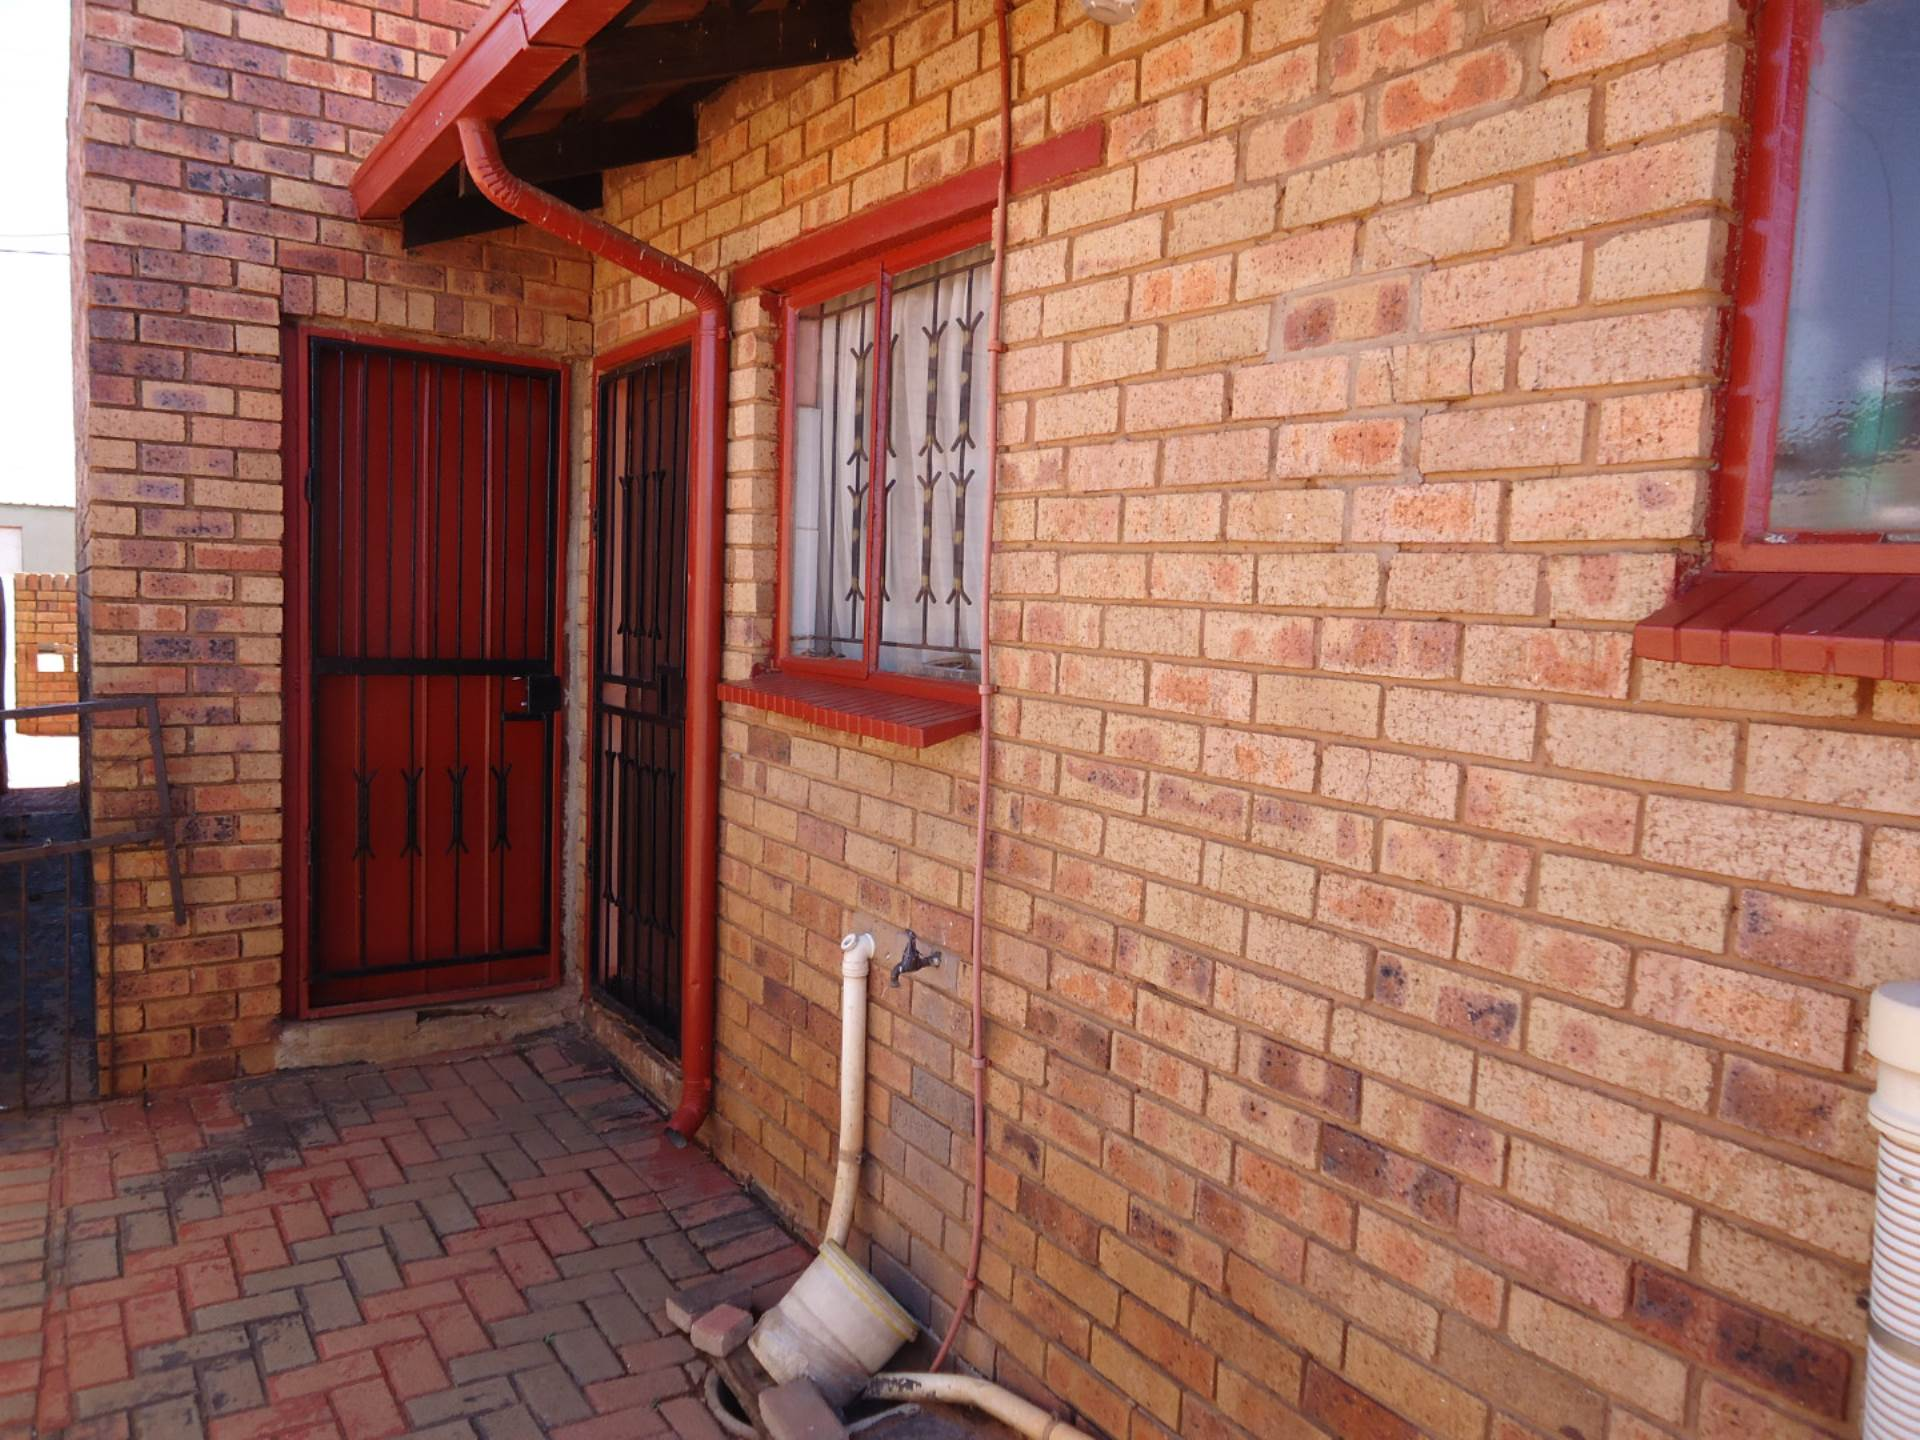 2 BedroomHouse For Sale In Tamboville